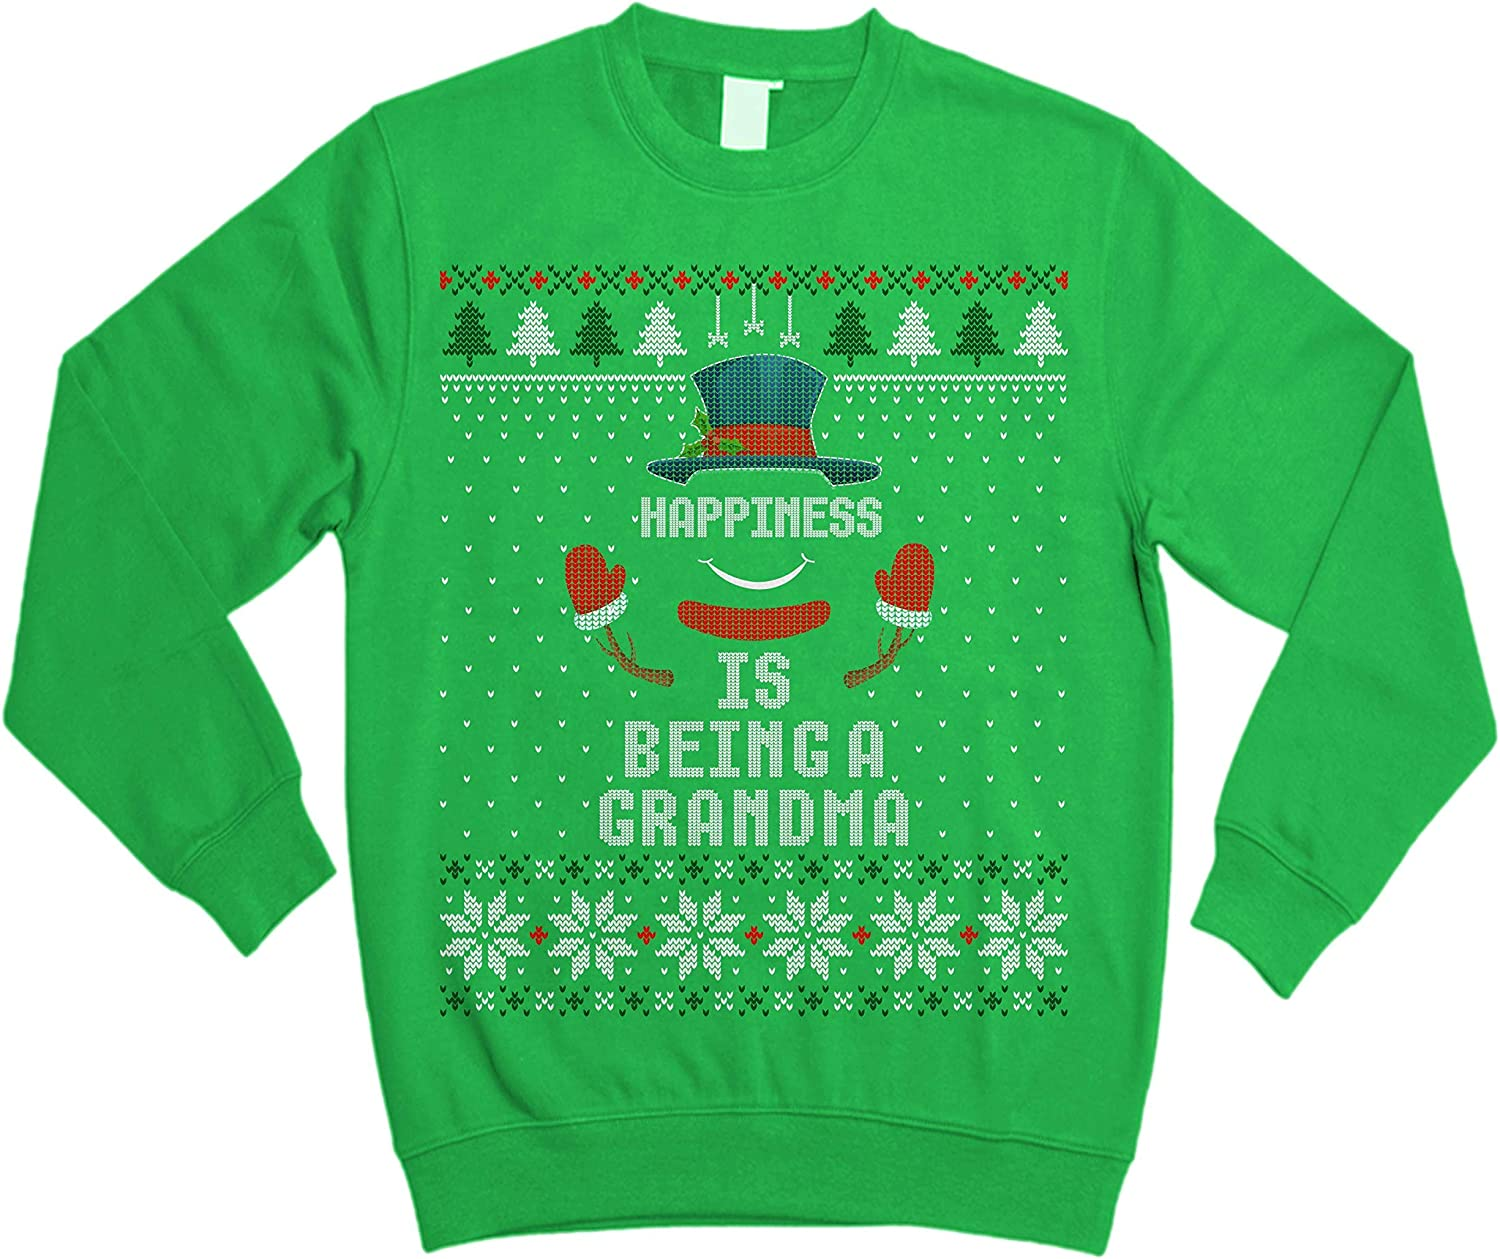 Happiness is Being A Grandma Snowman Christmas Ugly Sweater Sweatshirt